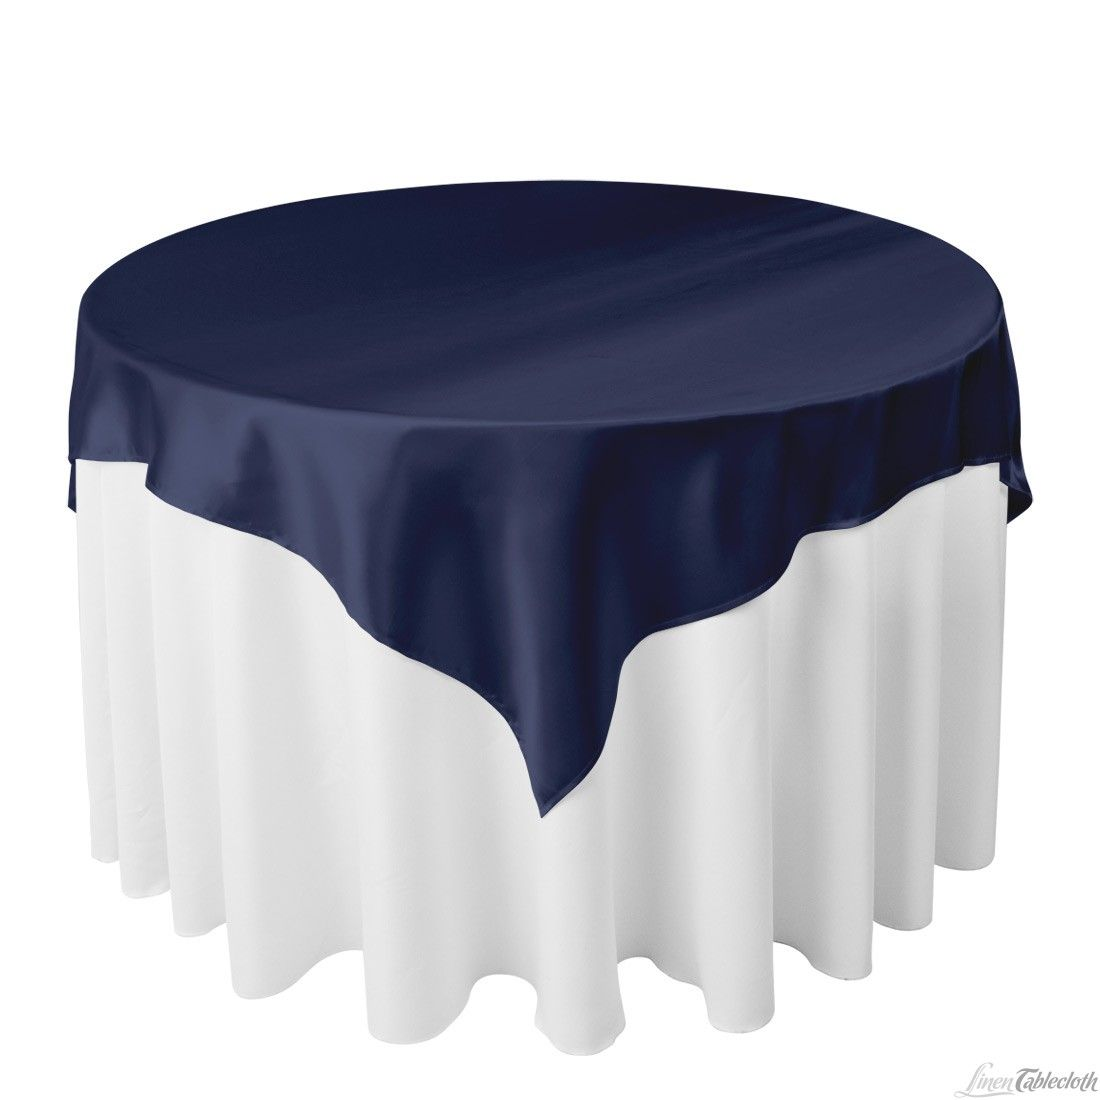 60 inch Square Satin Overlay Navy Blue on a 48 inch Round Table